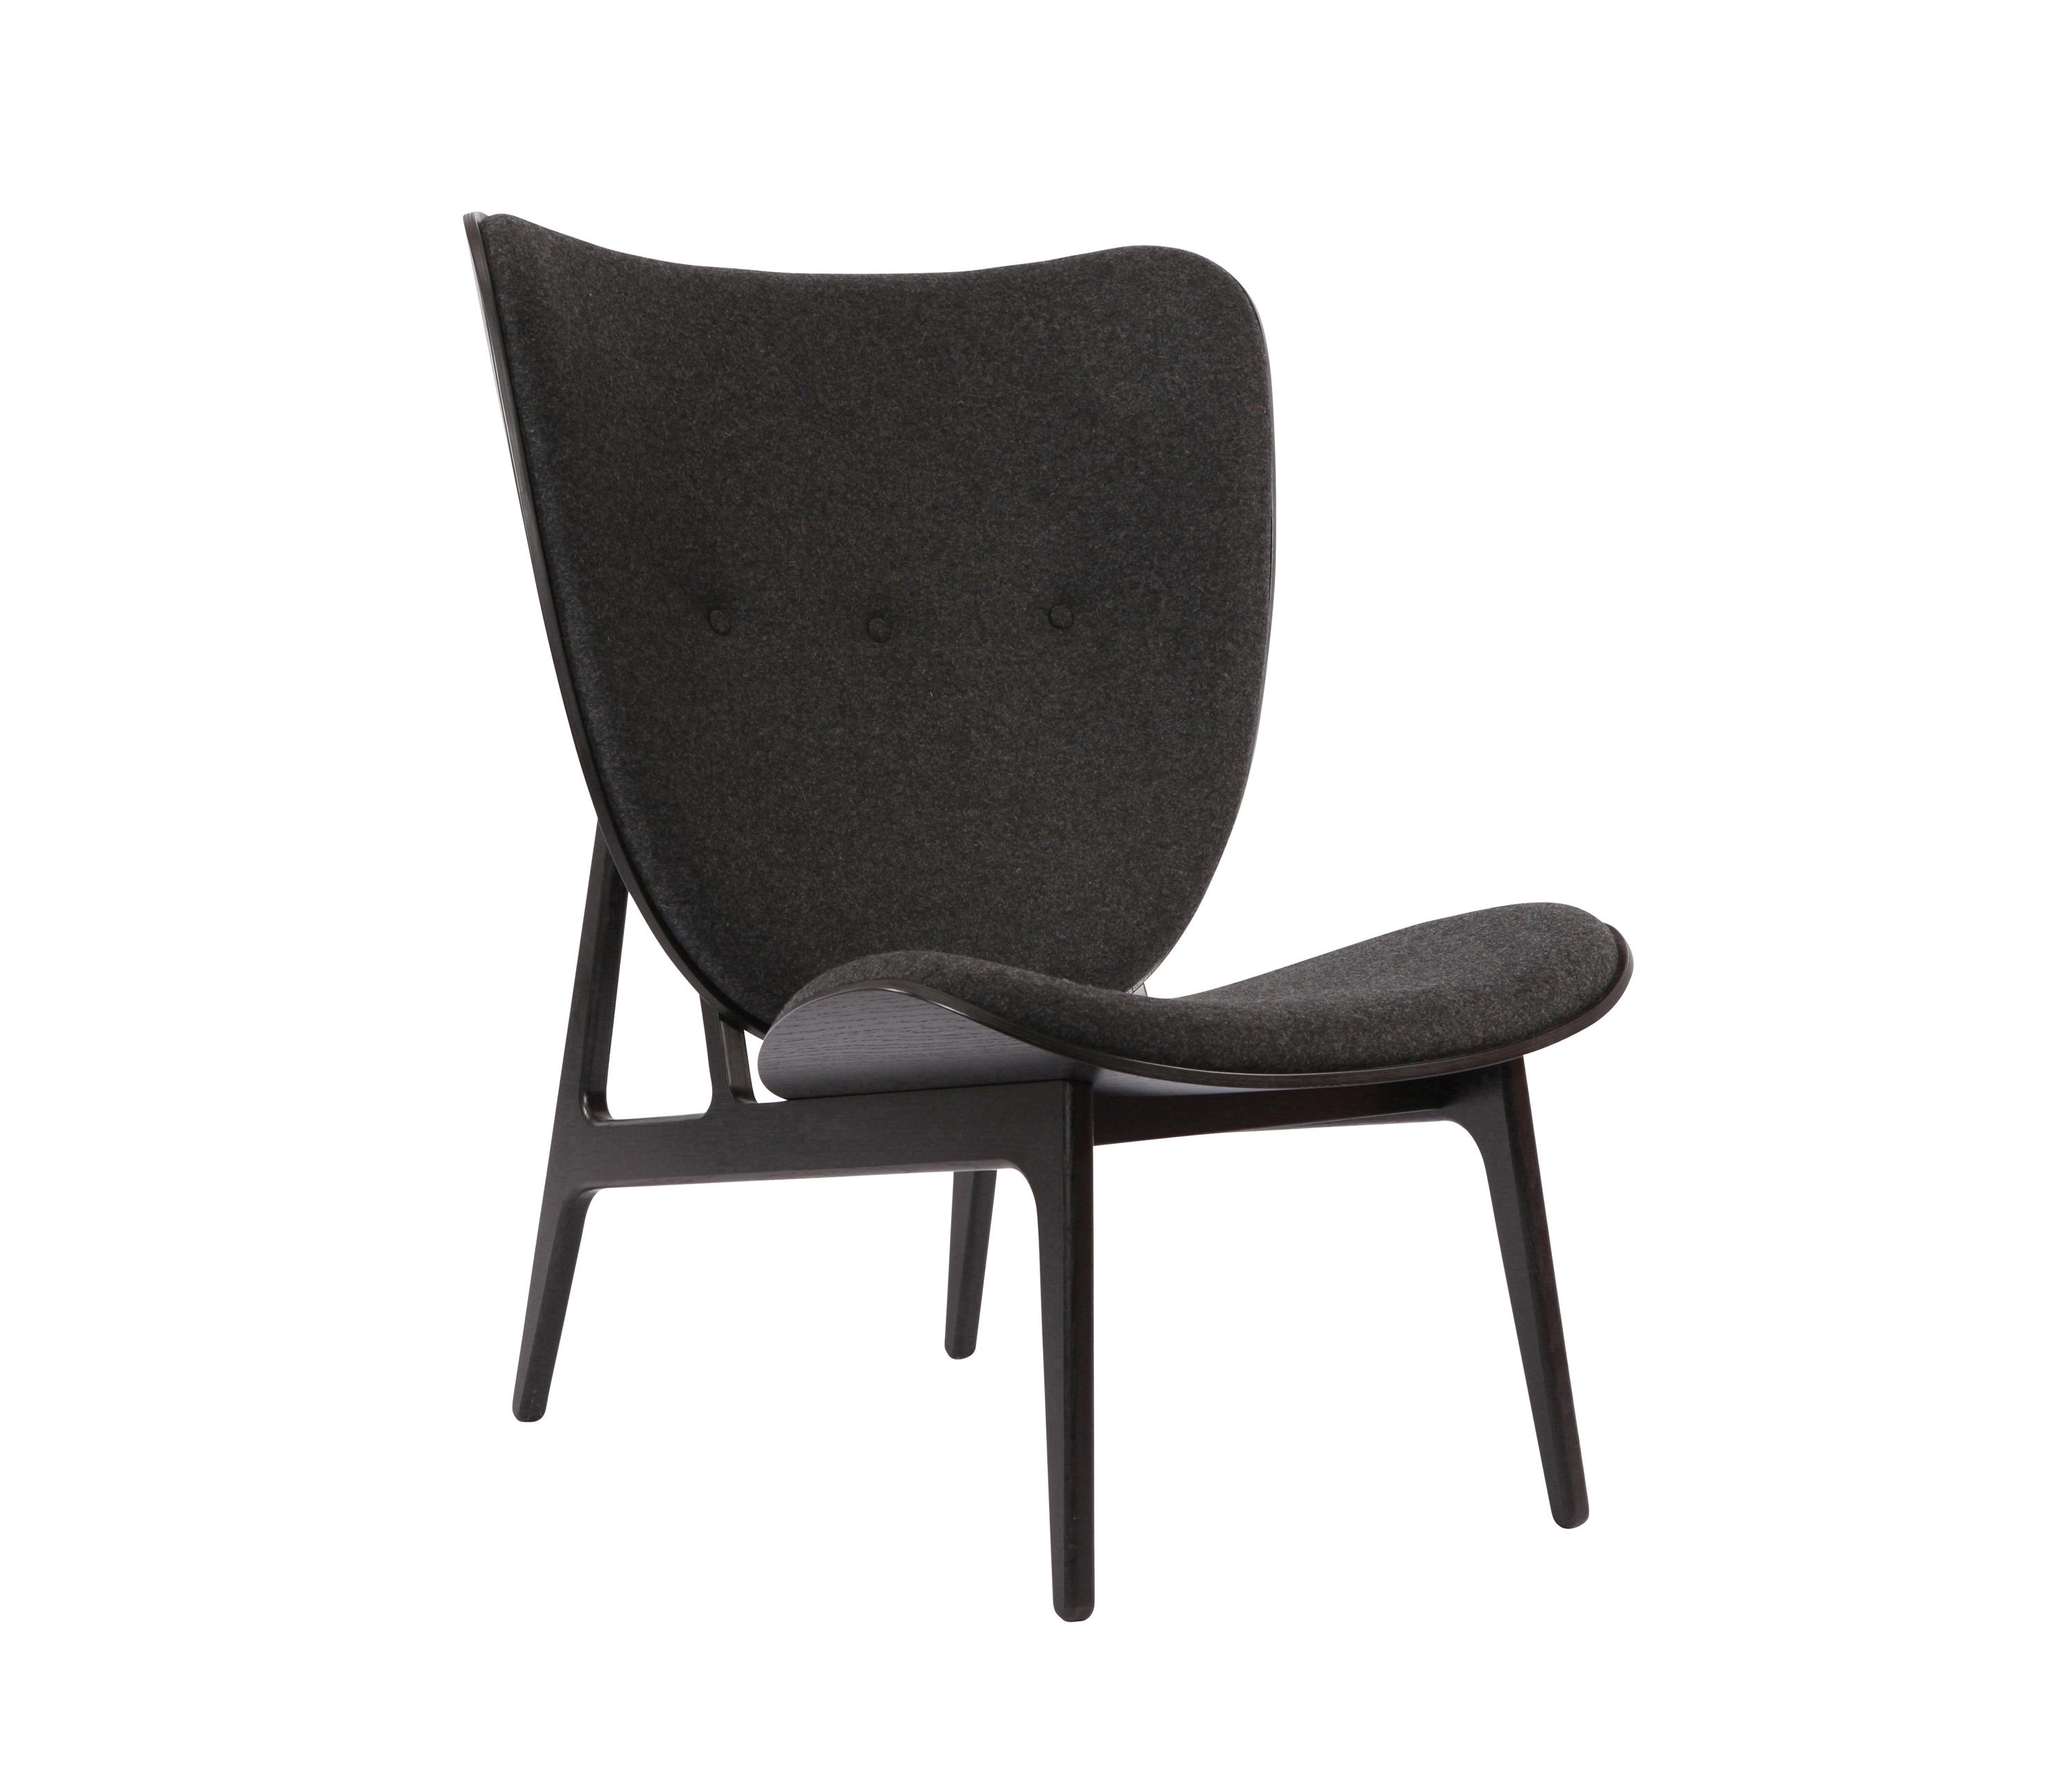 Superior Elephant Chair, Black / Wool: Coal Grey 067 By NORR11 | Lounge Chairs ...